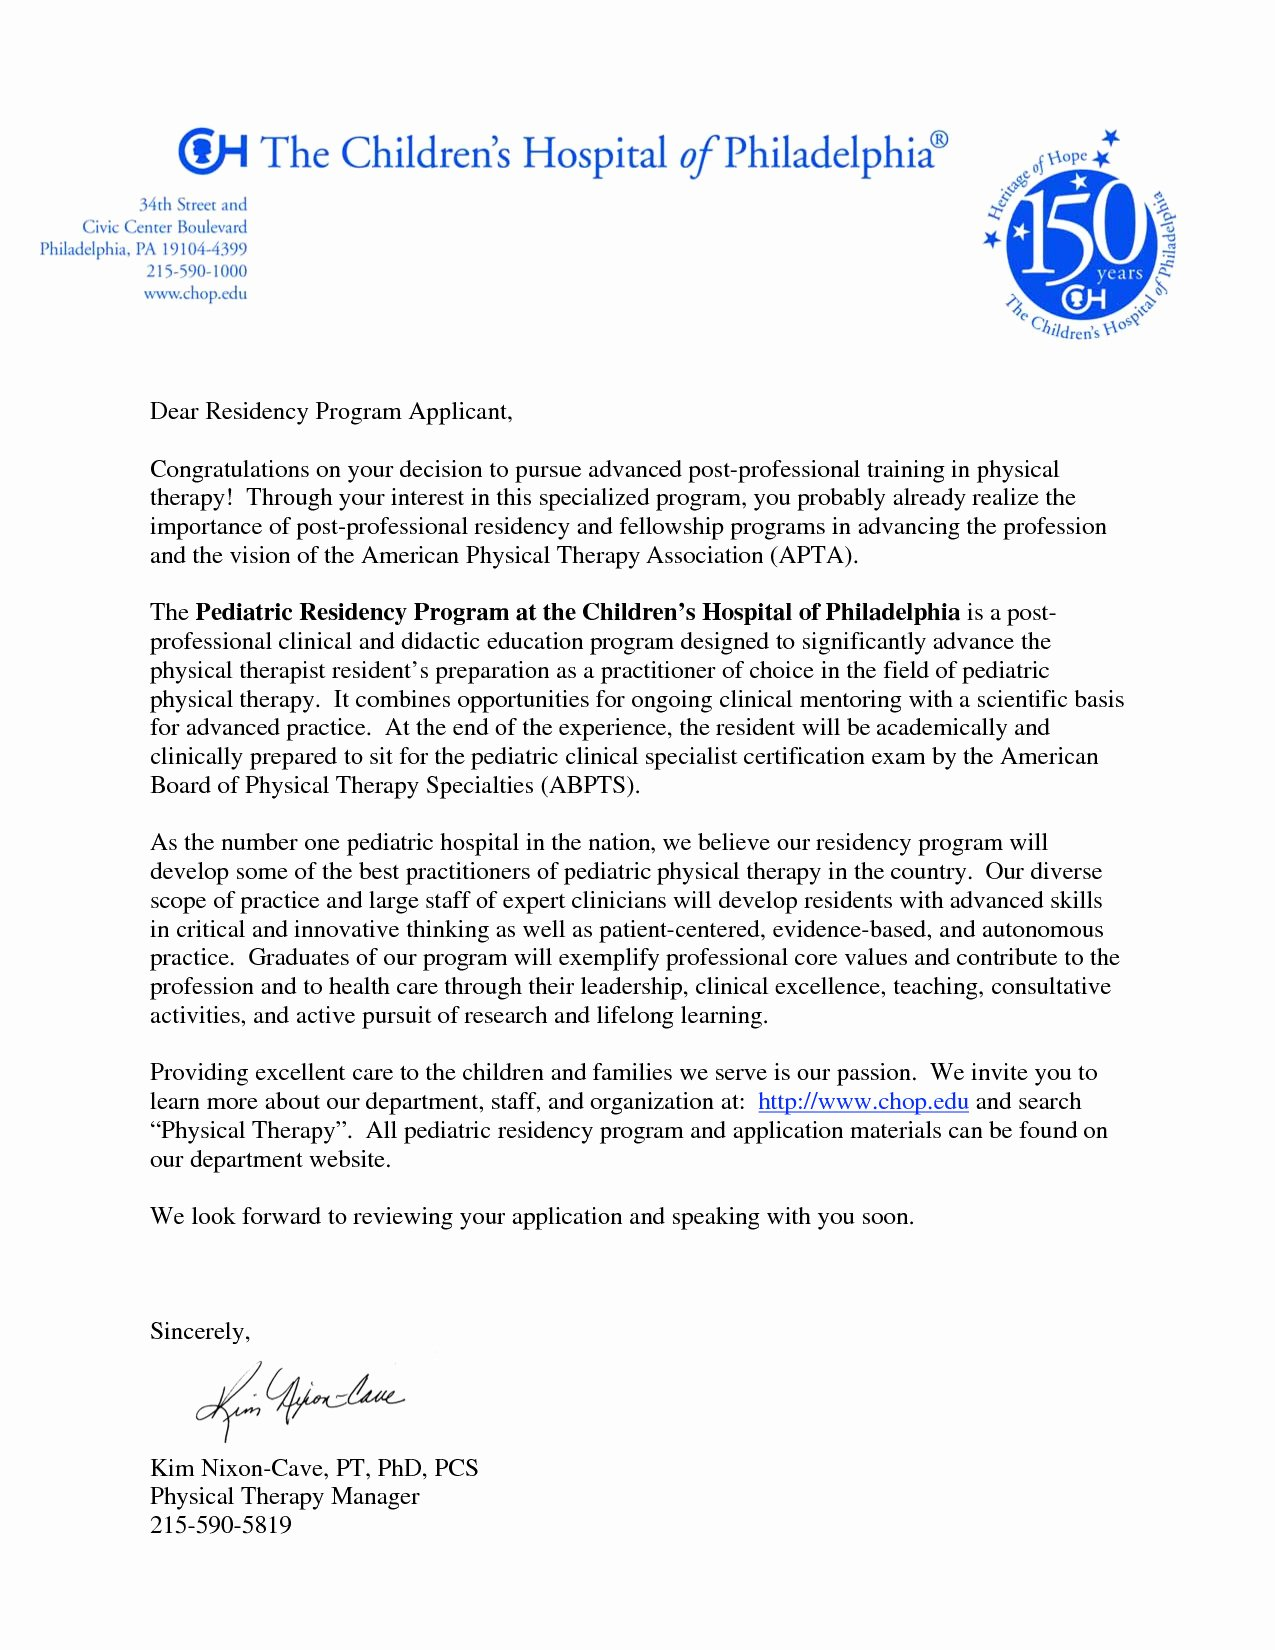 Physical therapy Letter Of Recommendation Beautiful Letter Re Mendation for Physical therapy School